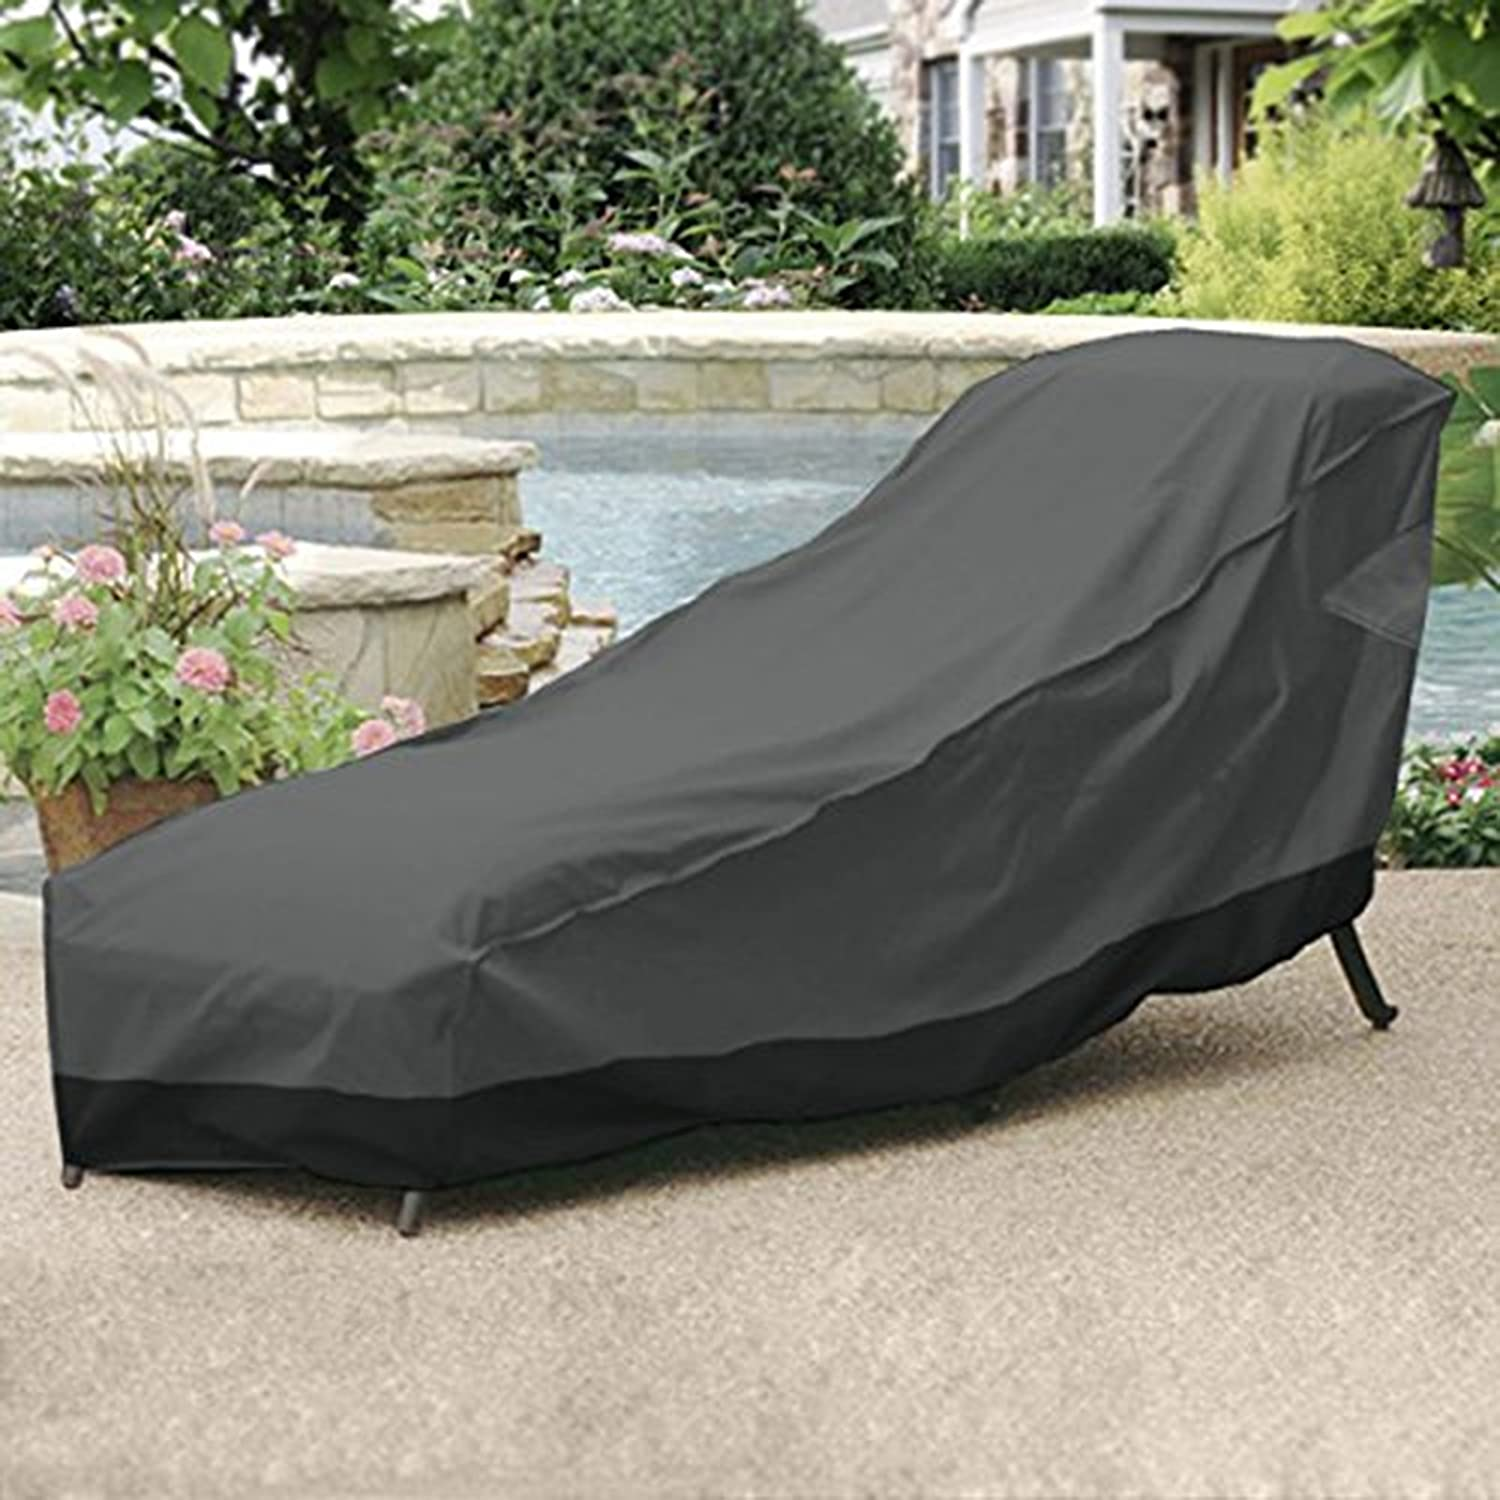 "Amazon Outdoor Patio Chaise Lounge Chair Cover 78"" Length"